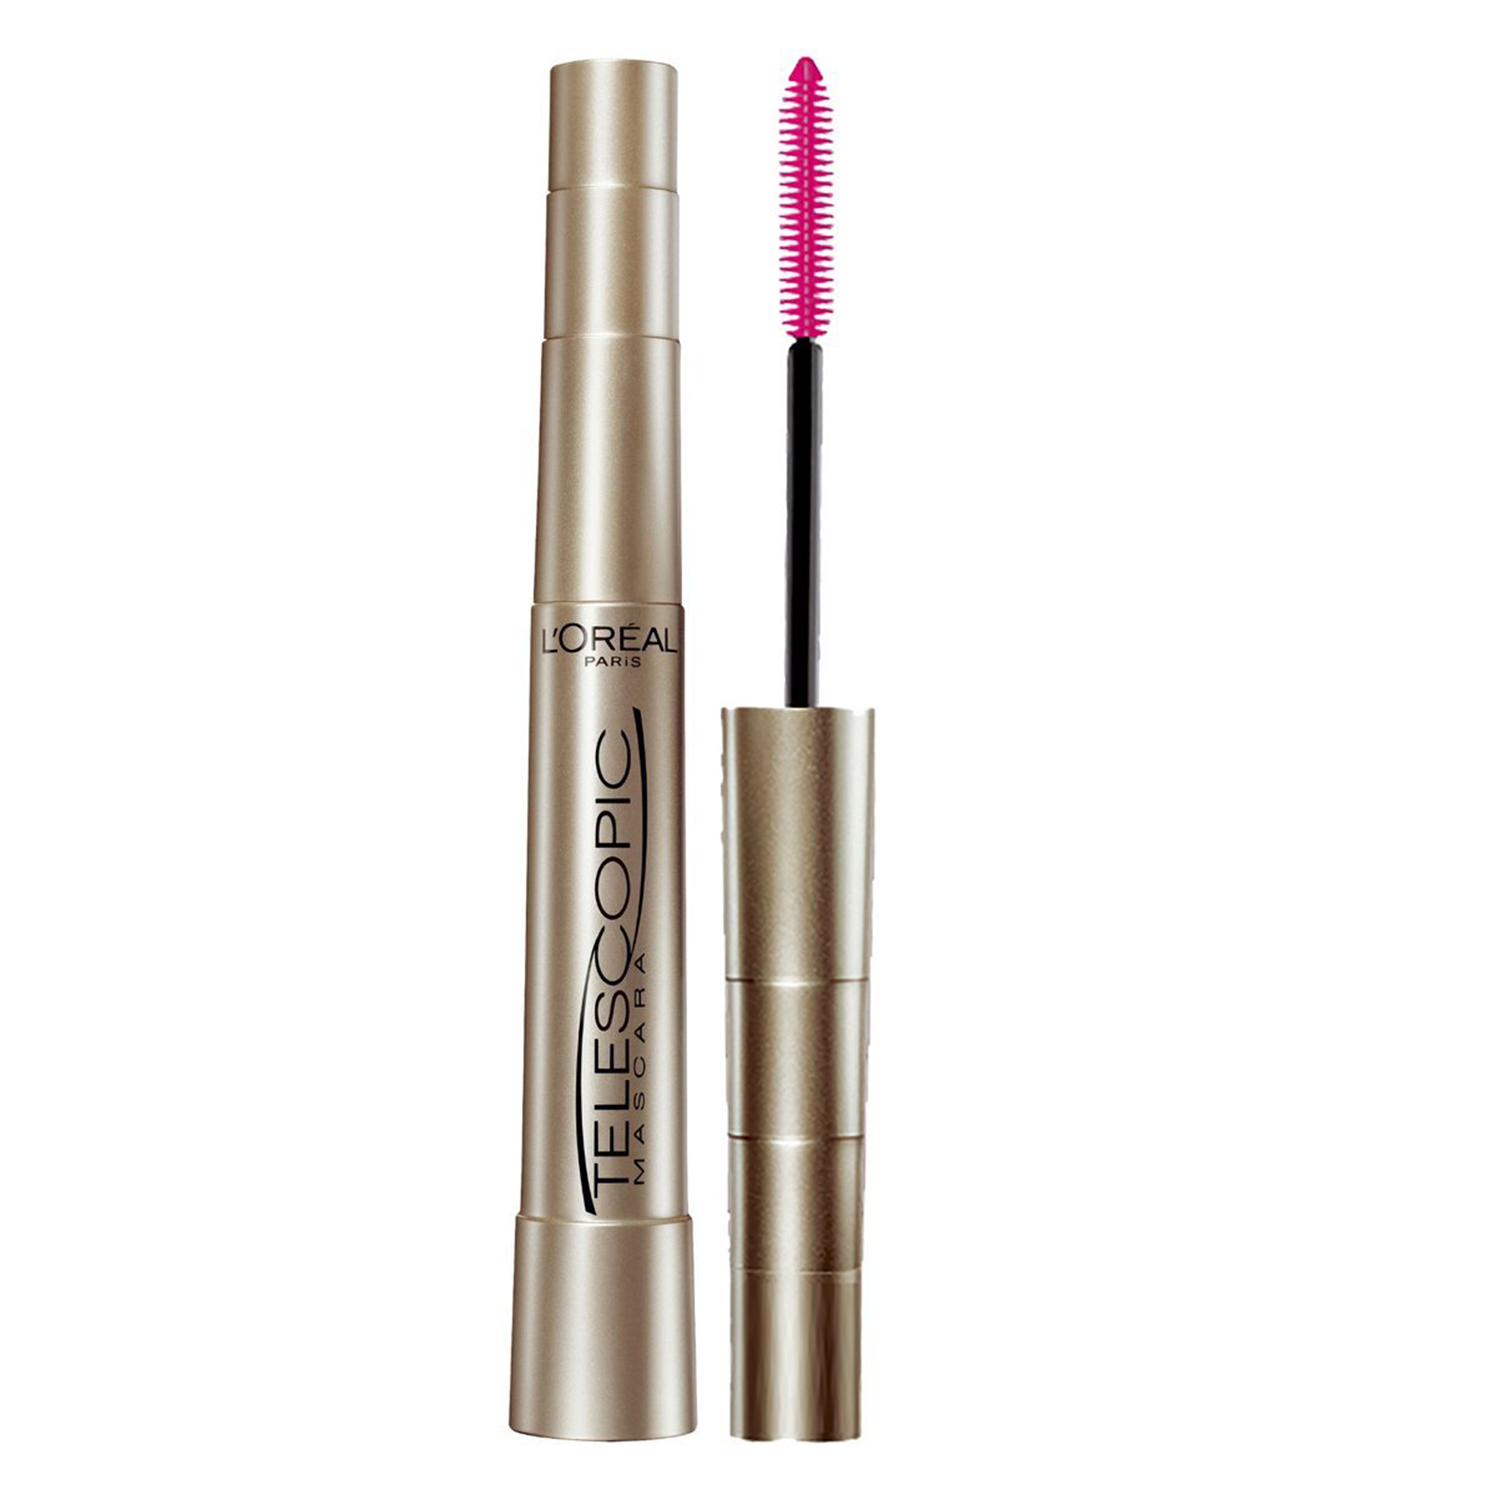 L'Oreal Paris Makeup Telescopic Original Lengthening Mascara